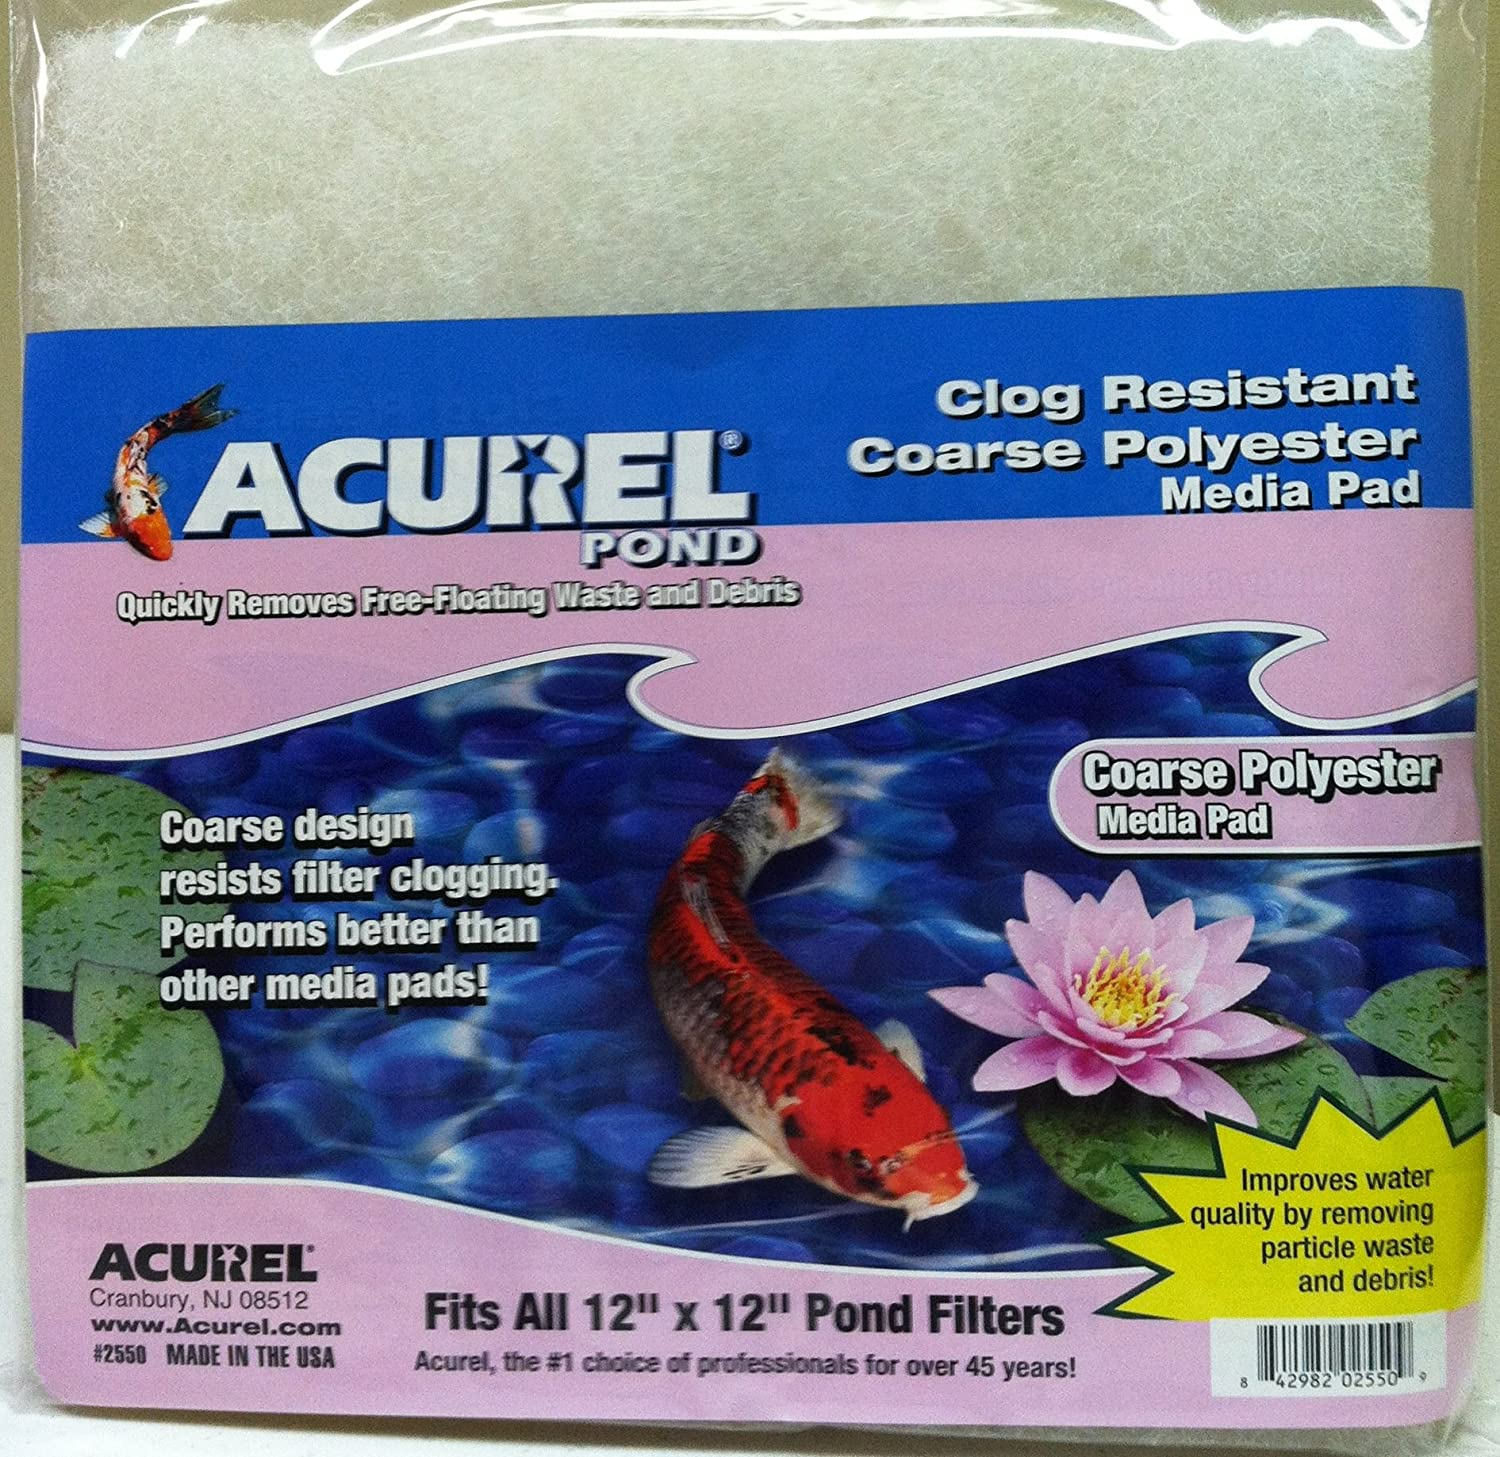 Acurel Coarse Polyester Media Pad 12-Inch by 12-Inch